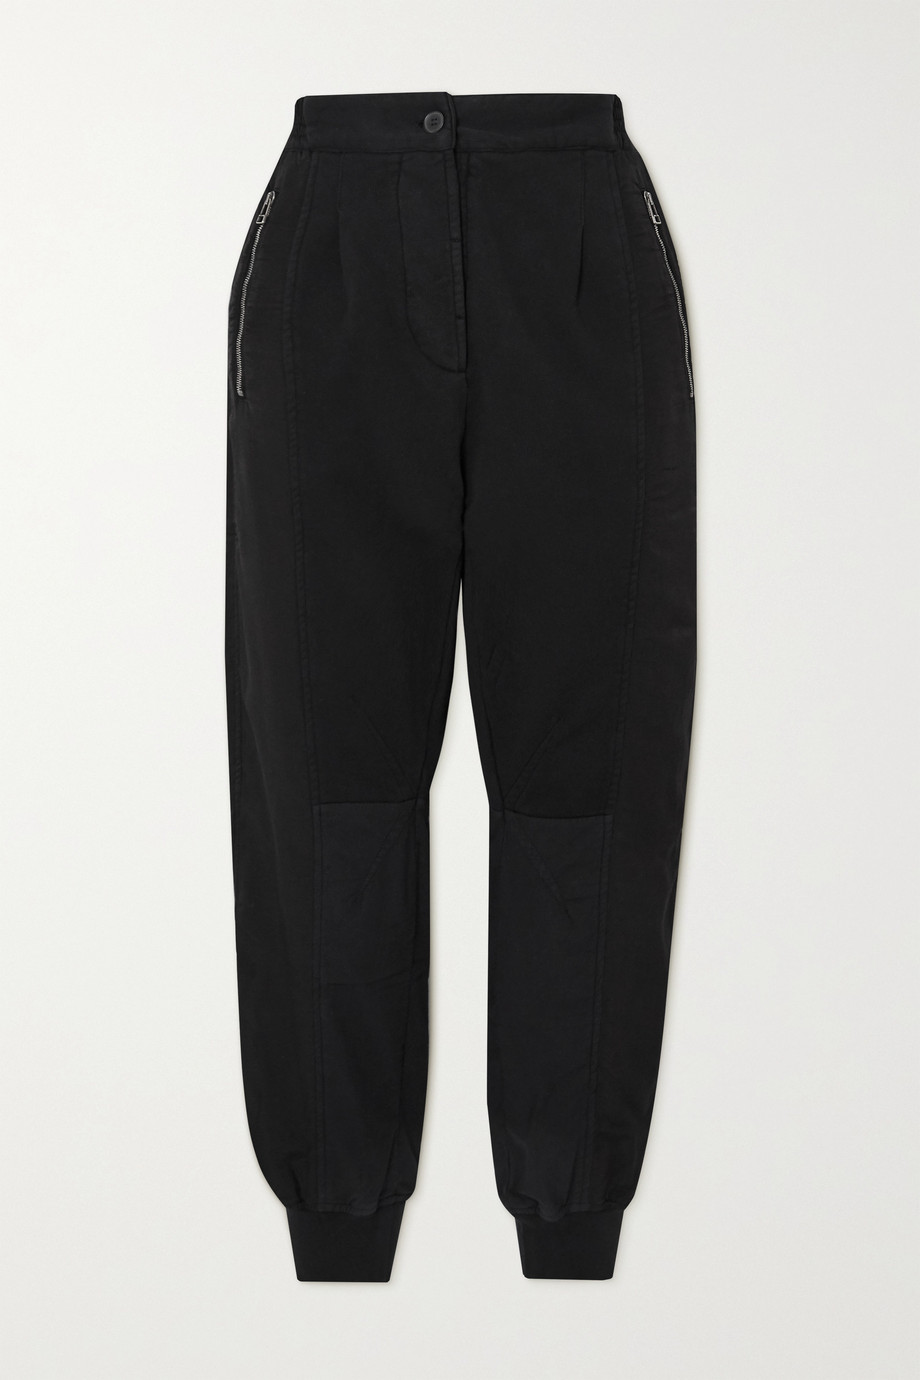 Haider Ackermann Cropped cotton-jersey and poplin track pants